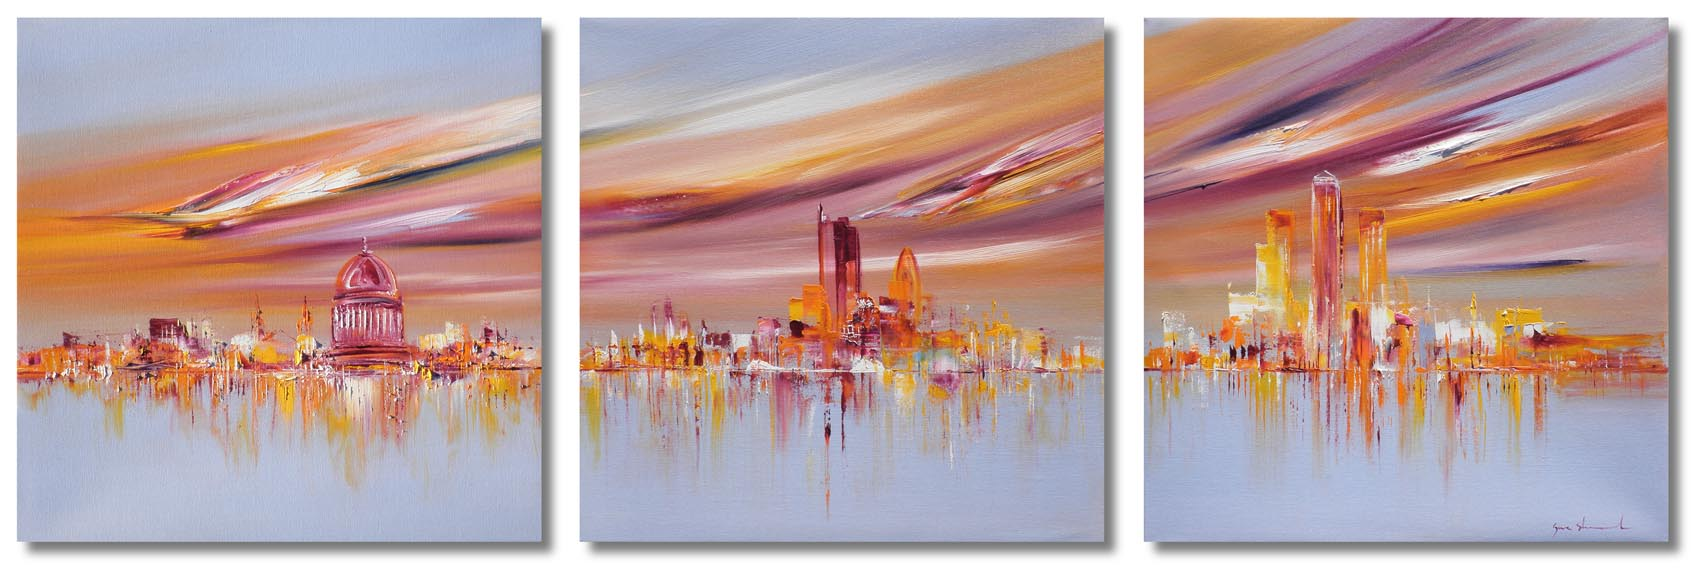 I can Breathe oil on canvas cityscape painting 97514